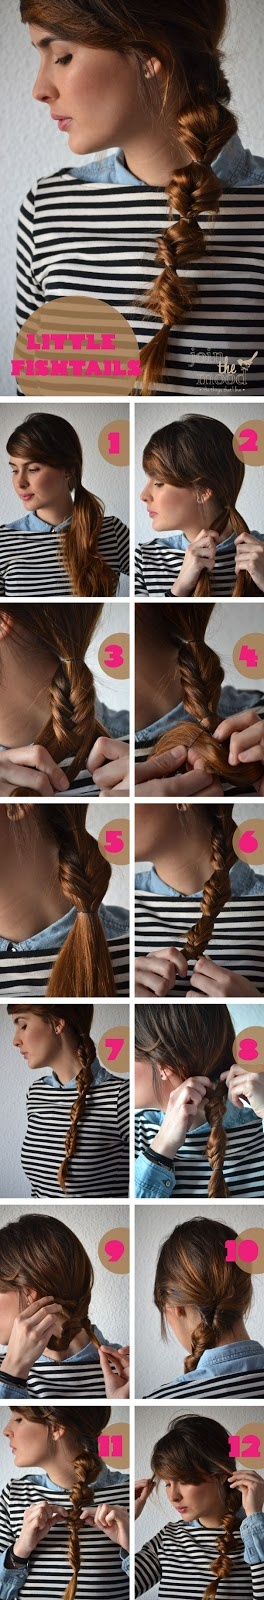 How To Make Little Fishtails For Your Hair. Adorable!